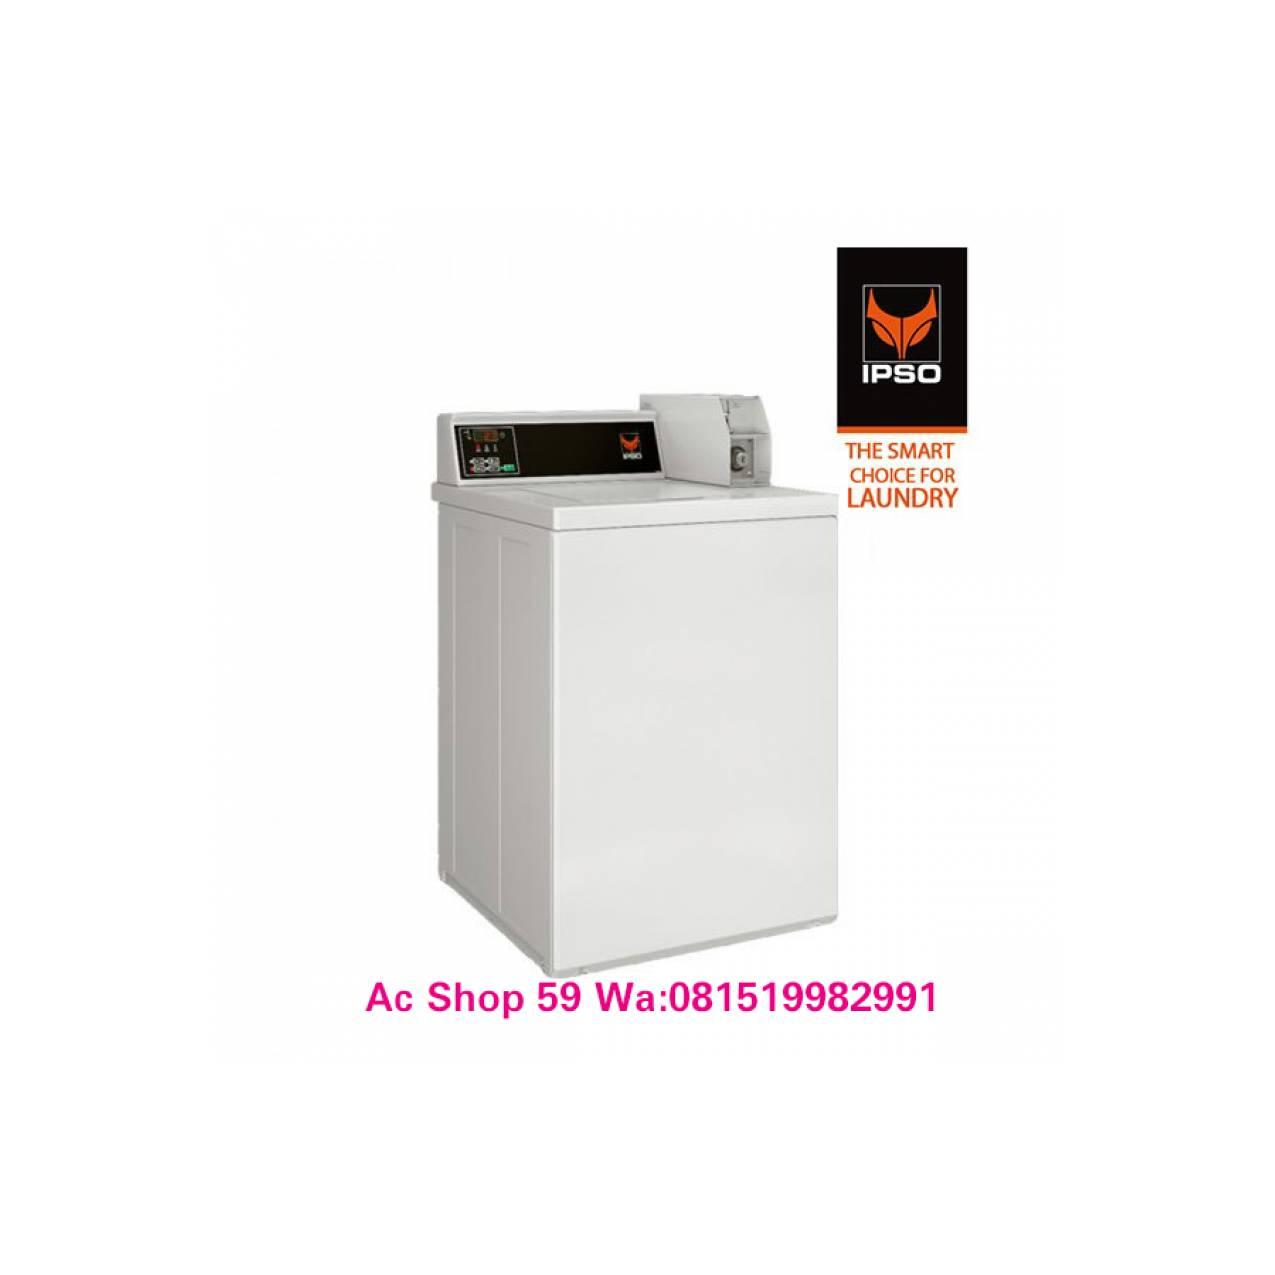 WASHER 10.5 KG IPSO NWN VENDED SINGLE COIN DIGITAL MESIN CUCI NEW